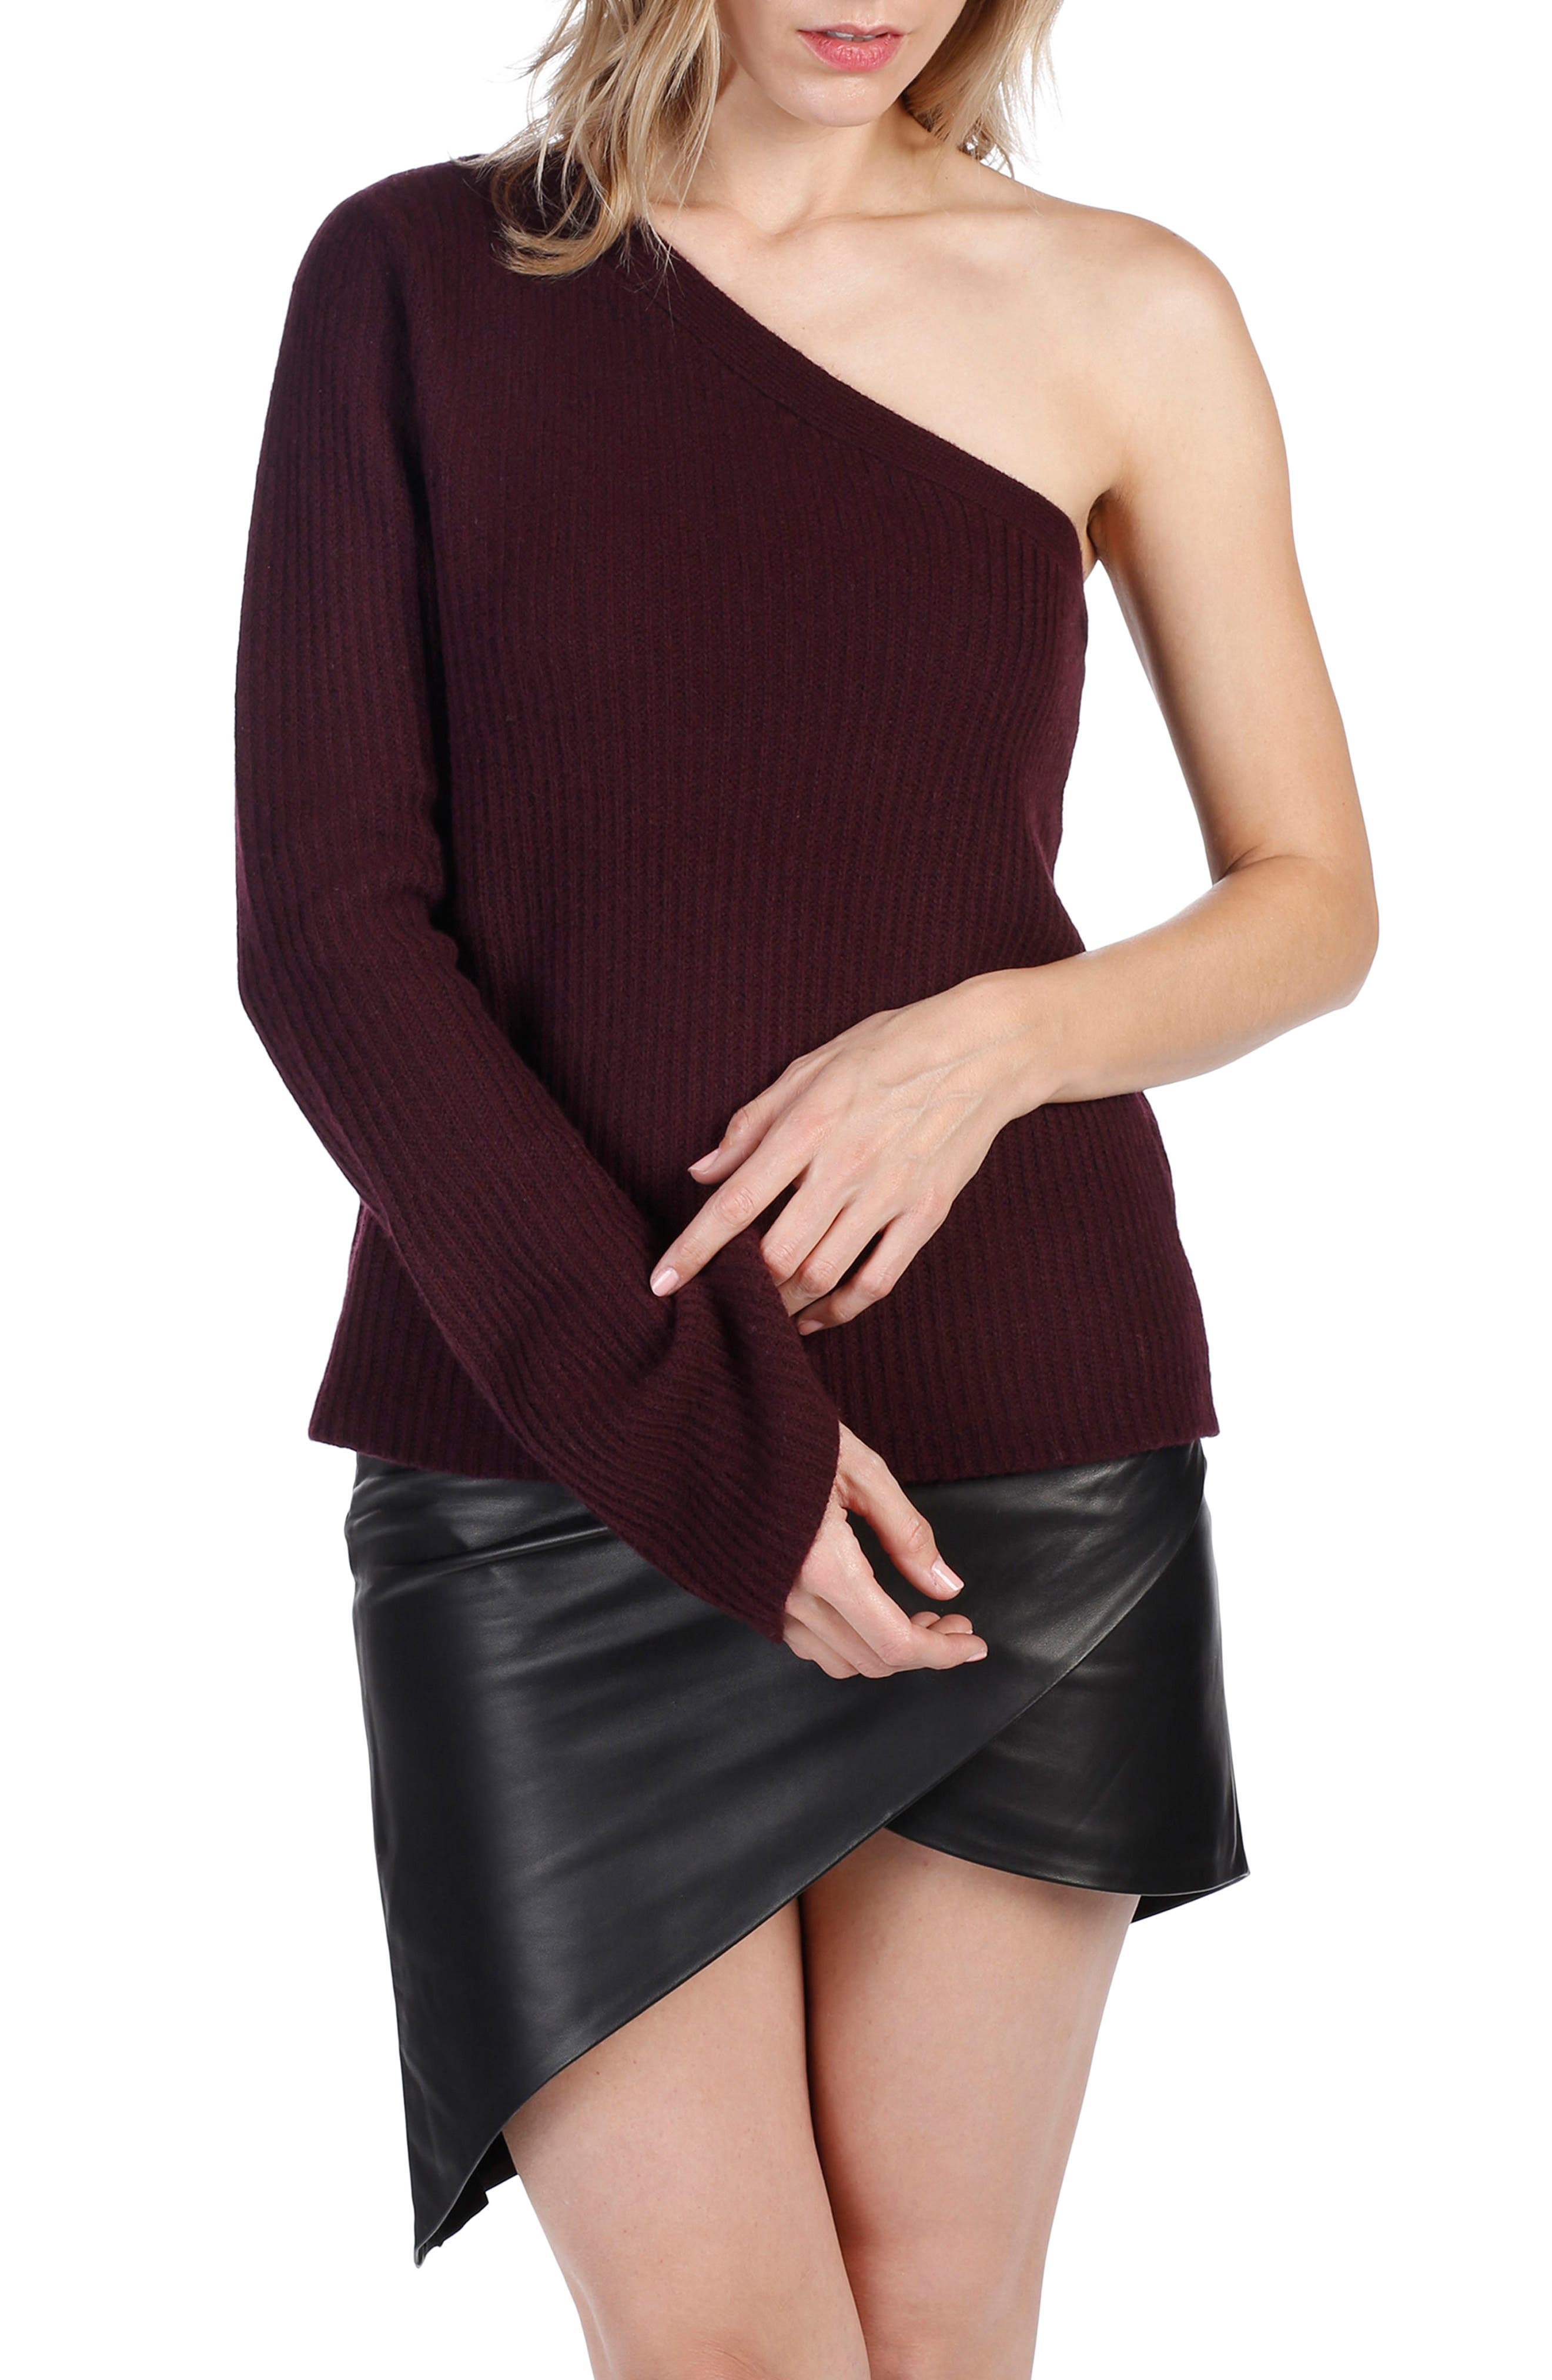 Rosie HW x PAIGE Hadlee One-Shoulder Sweater,                             Main thumbnail 1, color,                             606